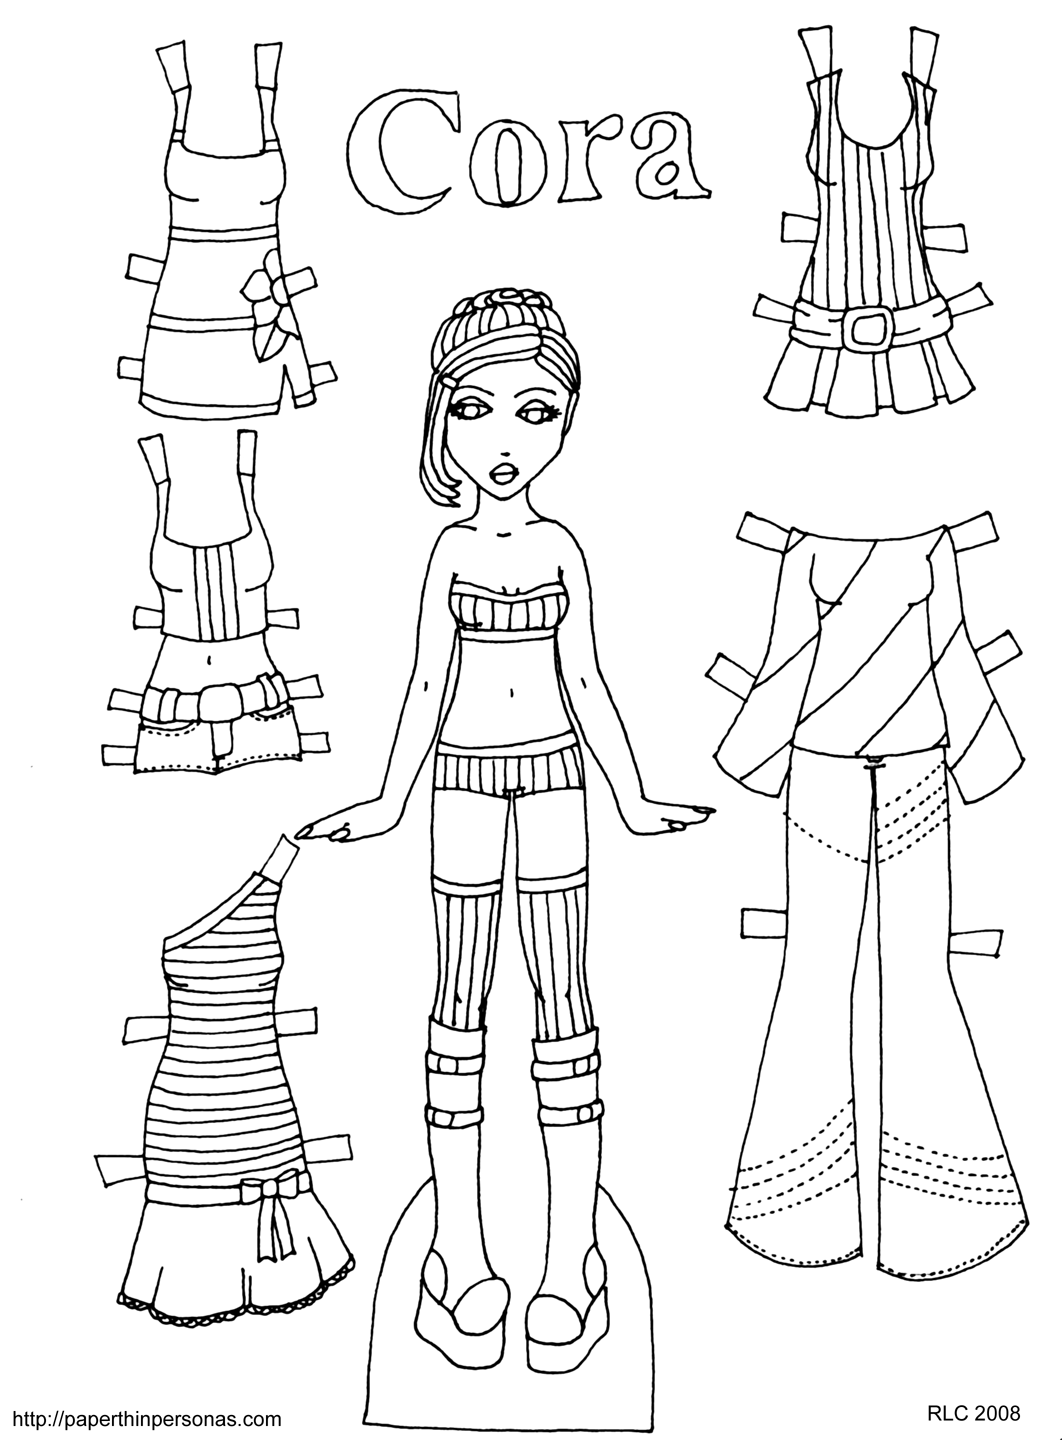 printable paper doll printable paper doll maiden of the north printable doll paper